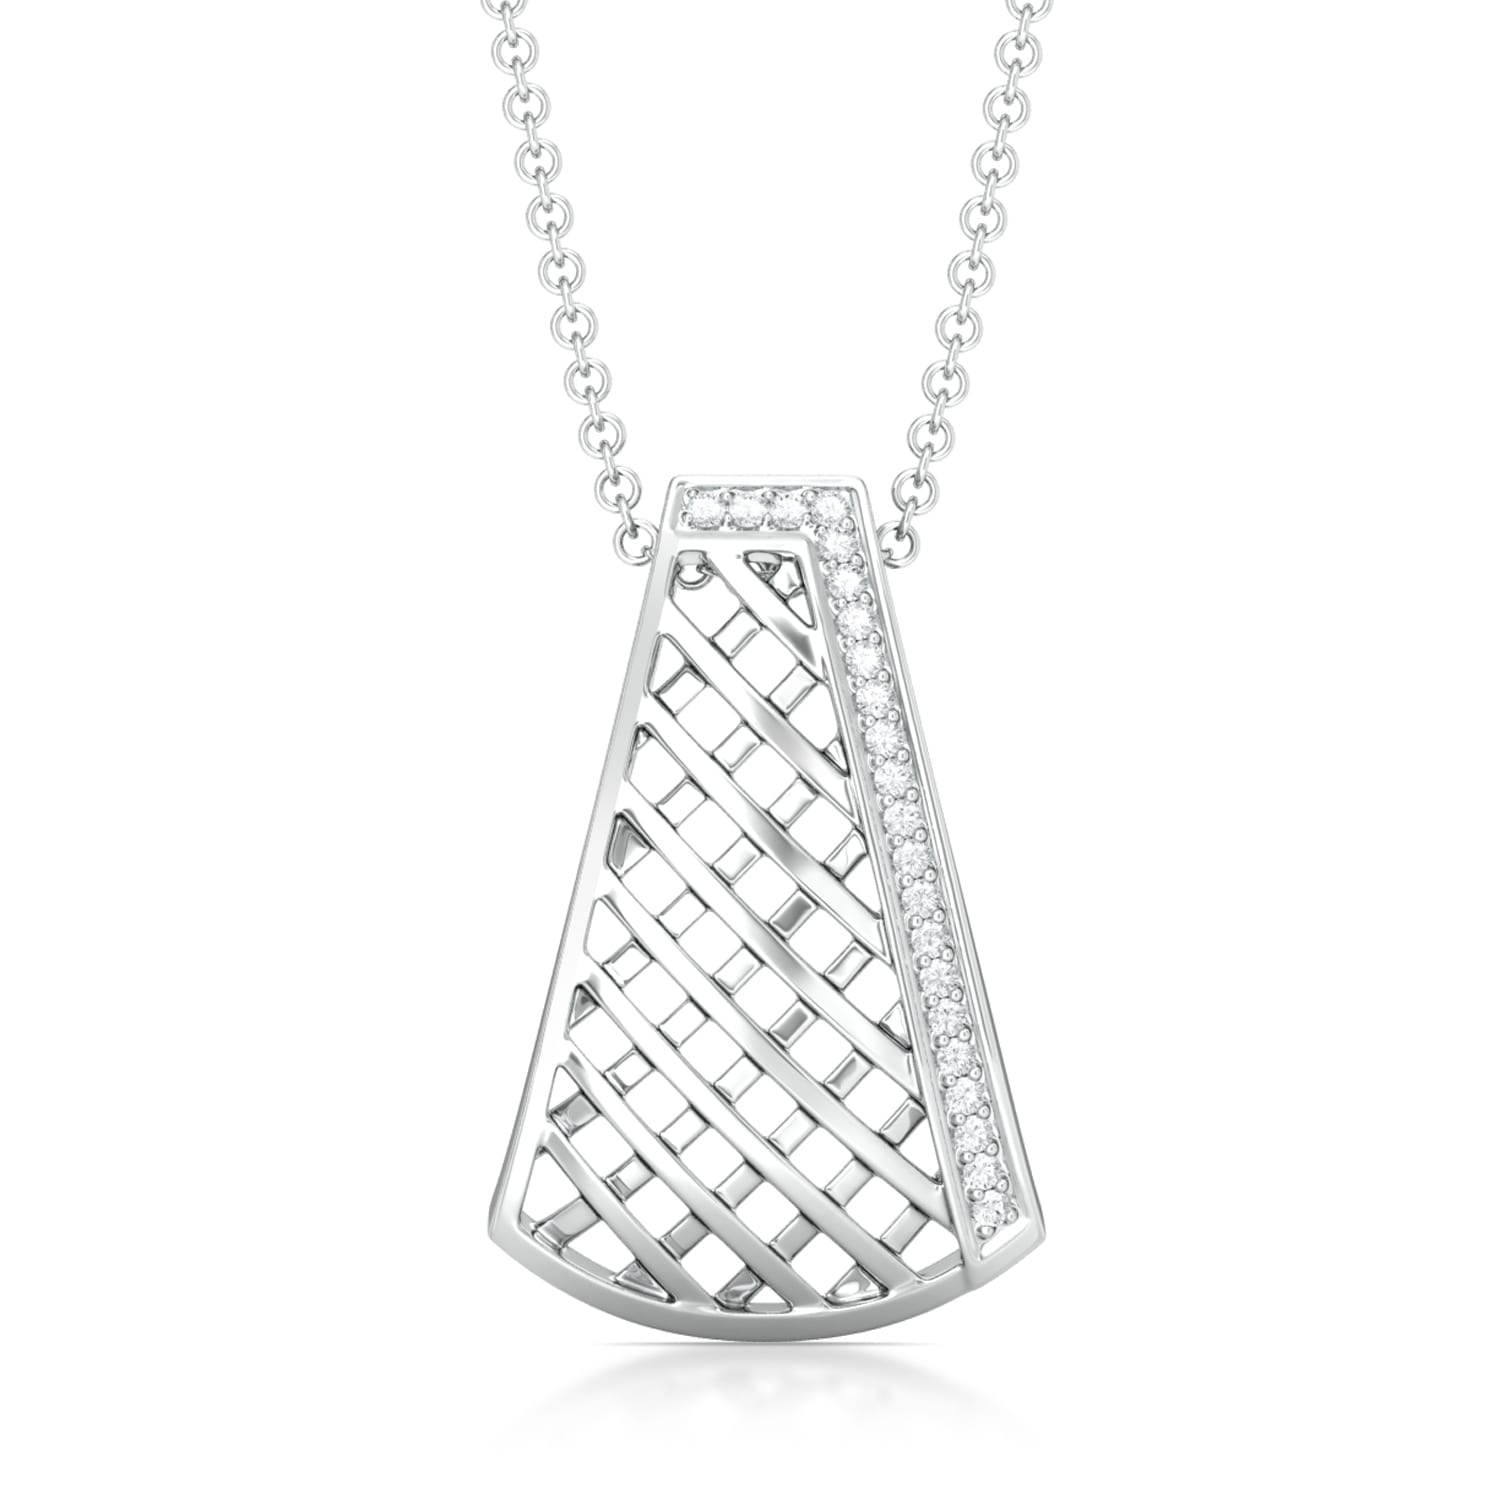 Cross-Hatch Diamond Pendants